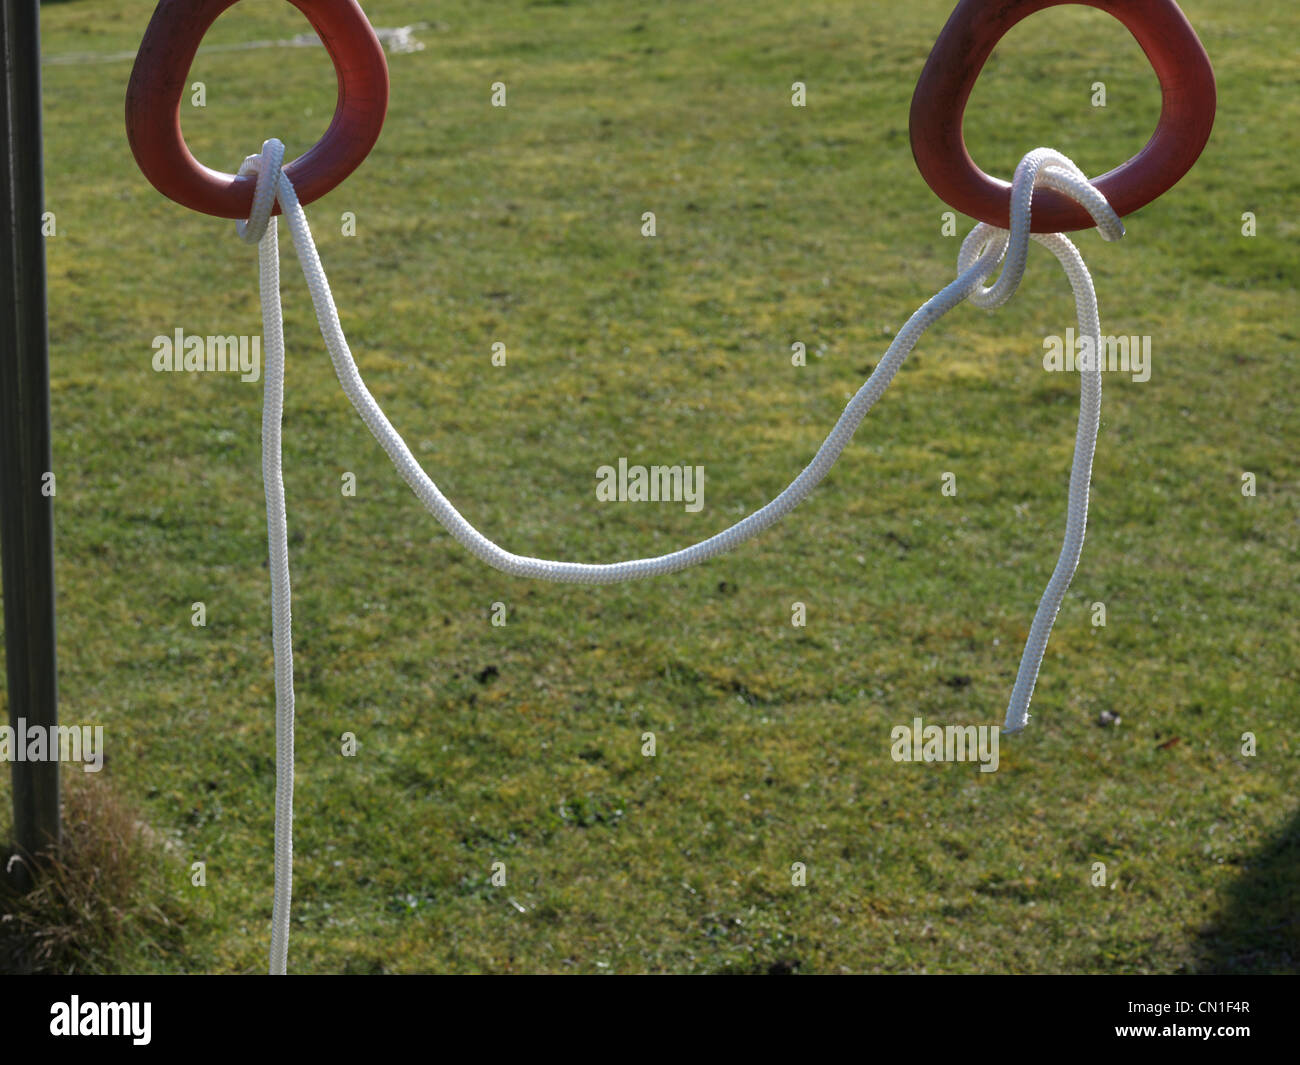 Rope Tied Up With Slack In The Middle - Stock Image